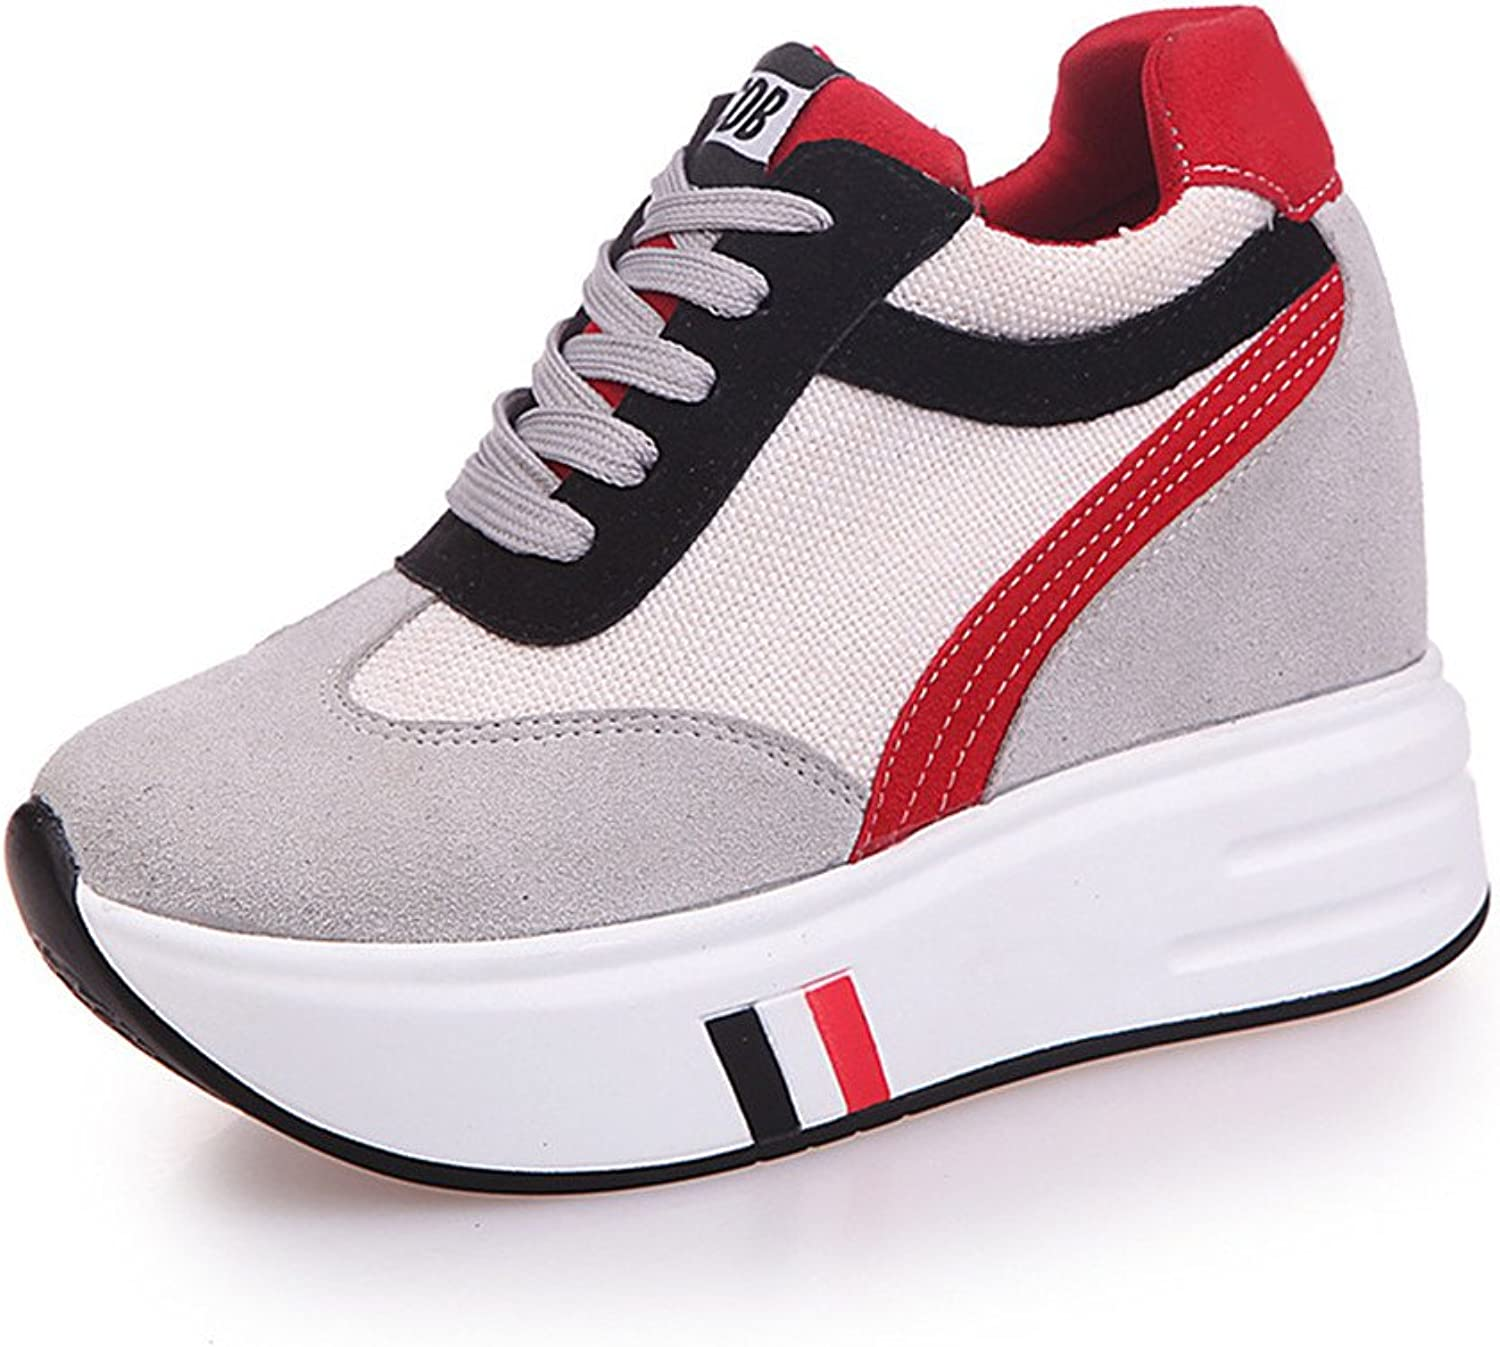 MODEOK Fashion Thick-Soled Sports shoes Round Head Toe Strap color Mixed Casual shoes